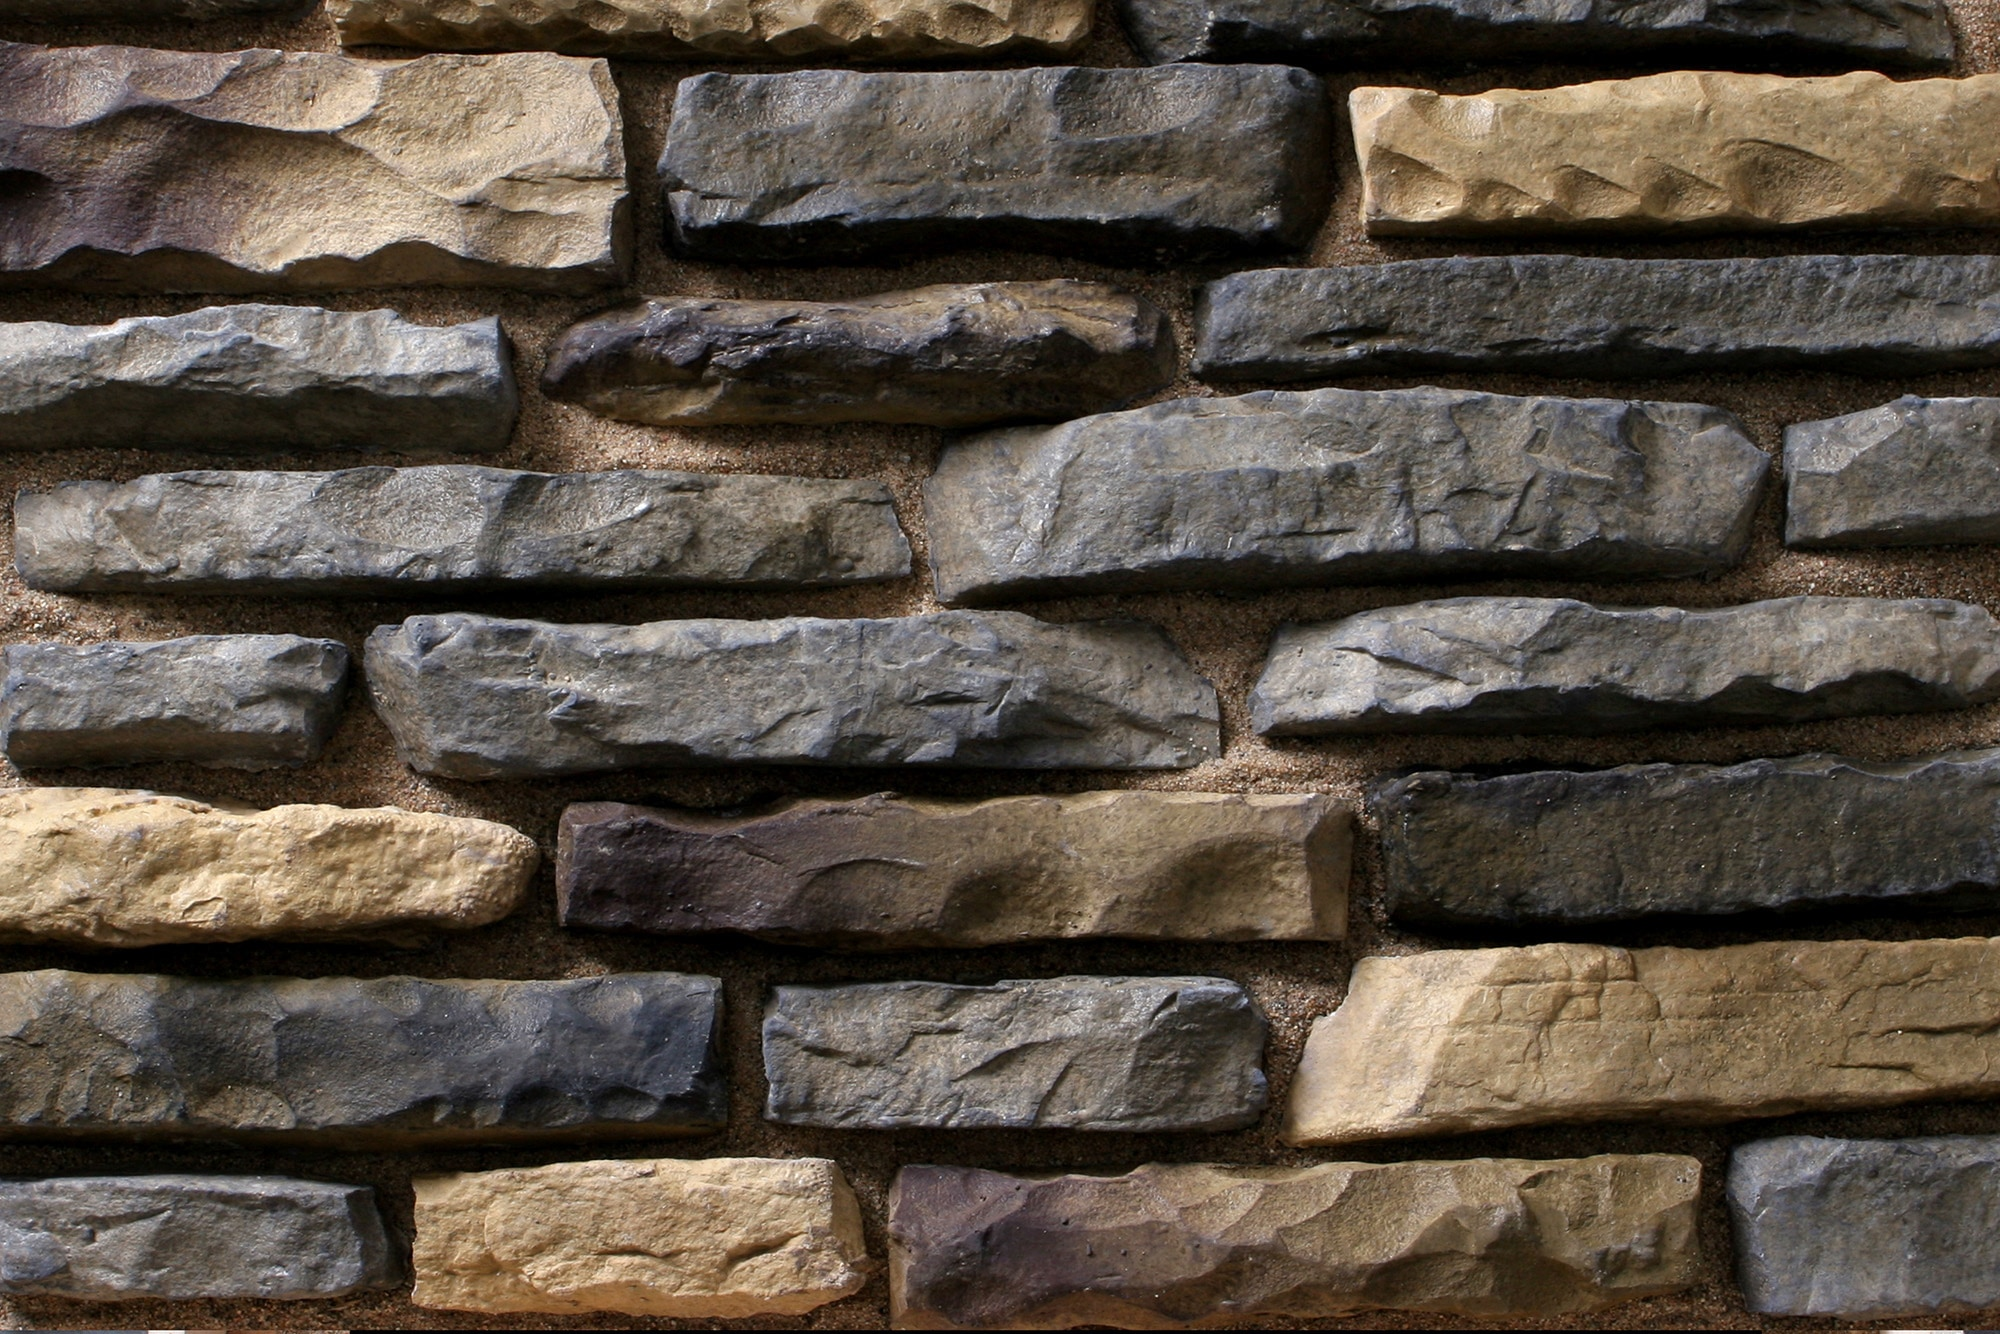 Kodiak Mountain Stone Manufactured Veneer Western Ledge